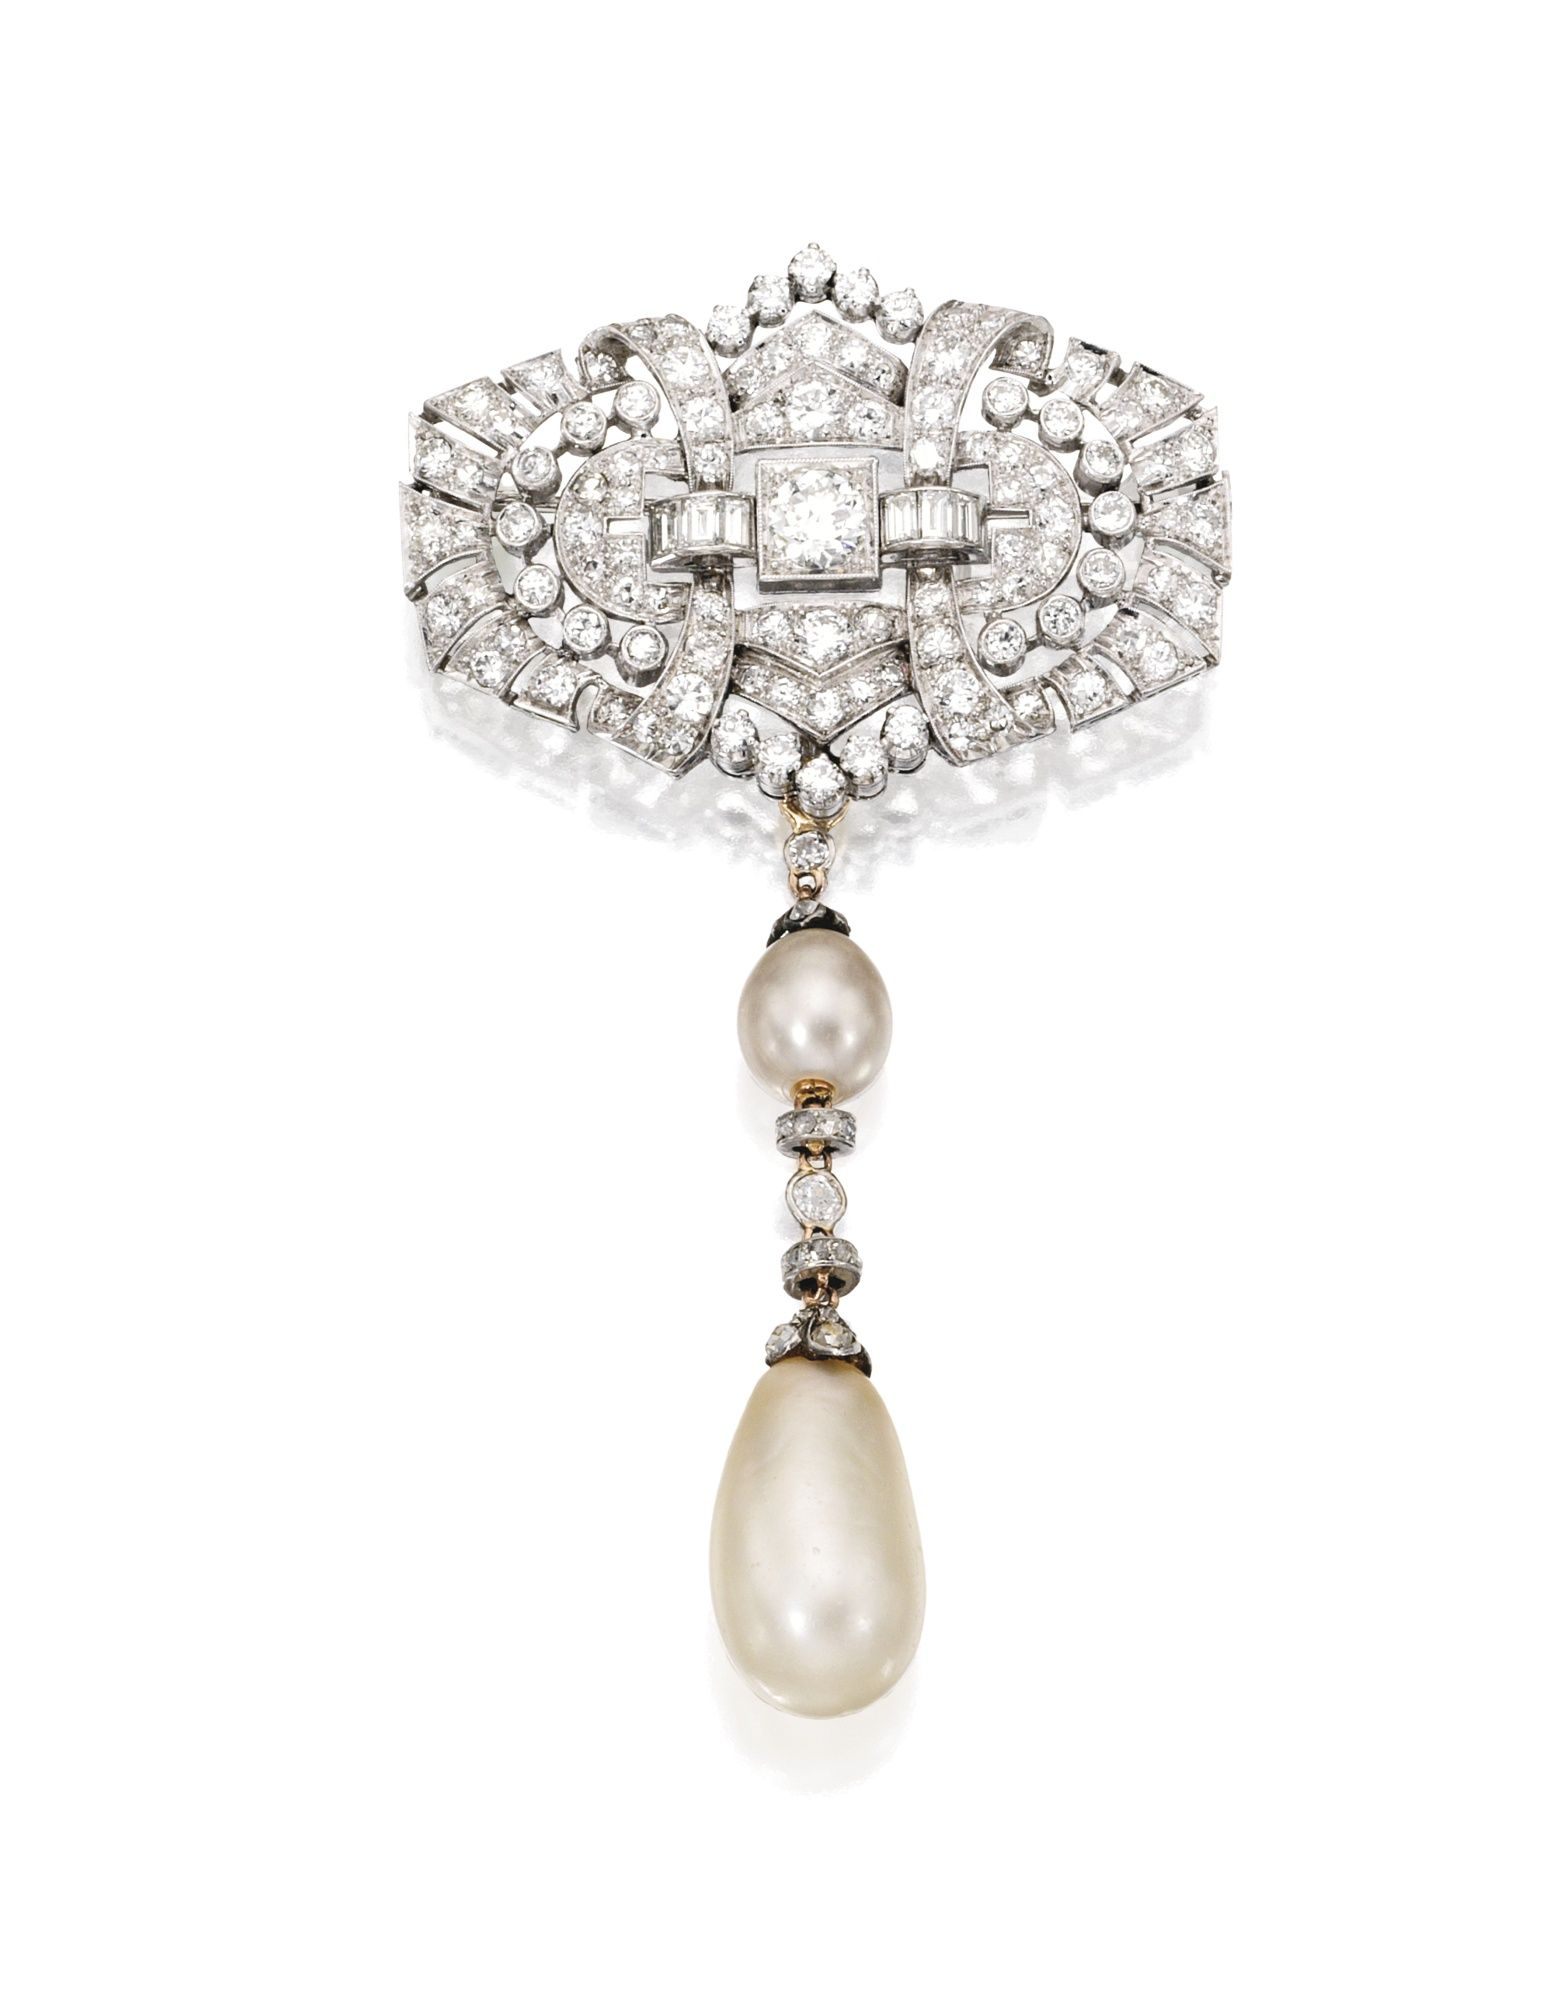 Diamond brooch and natural pearl and diamond pendant the brooch of